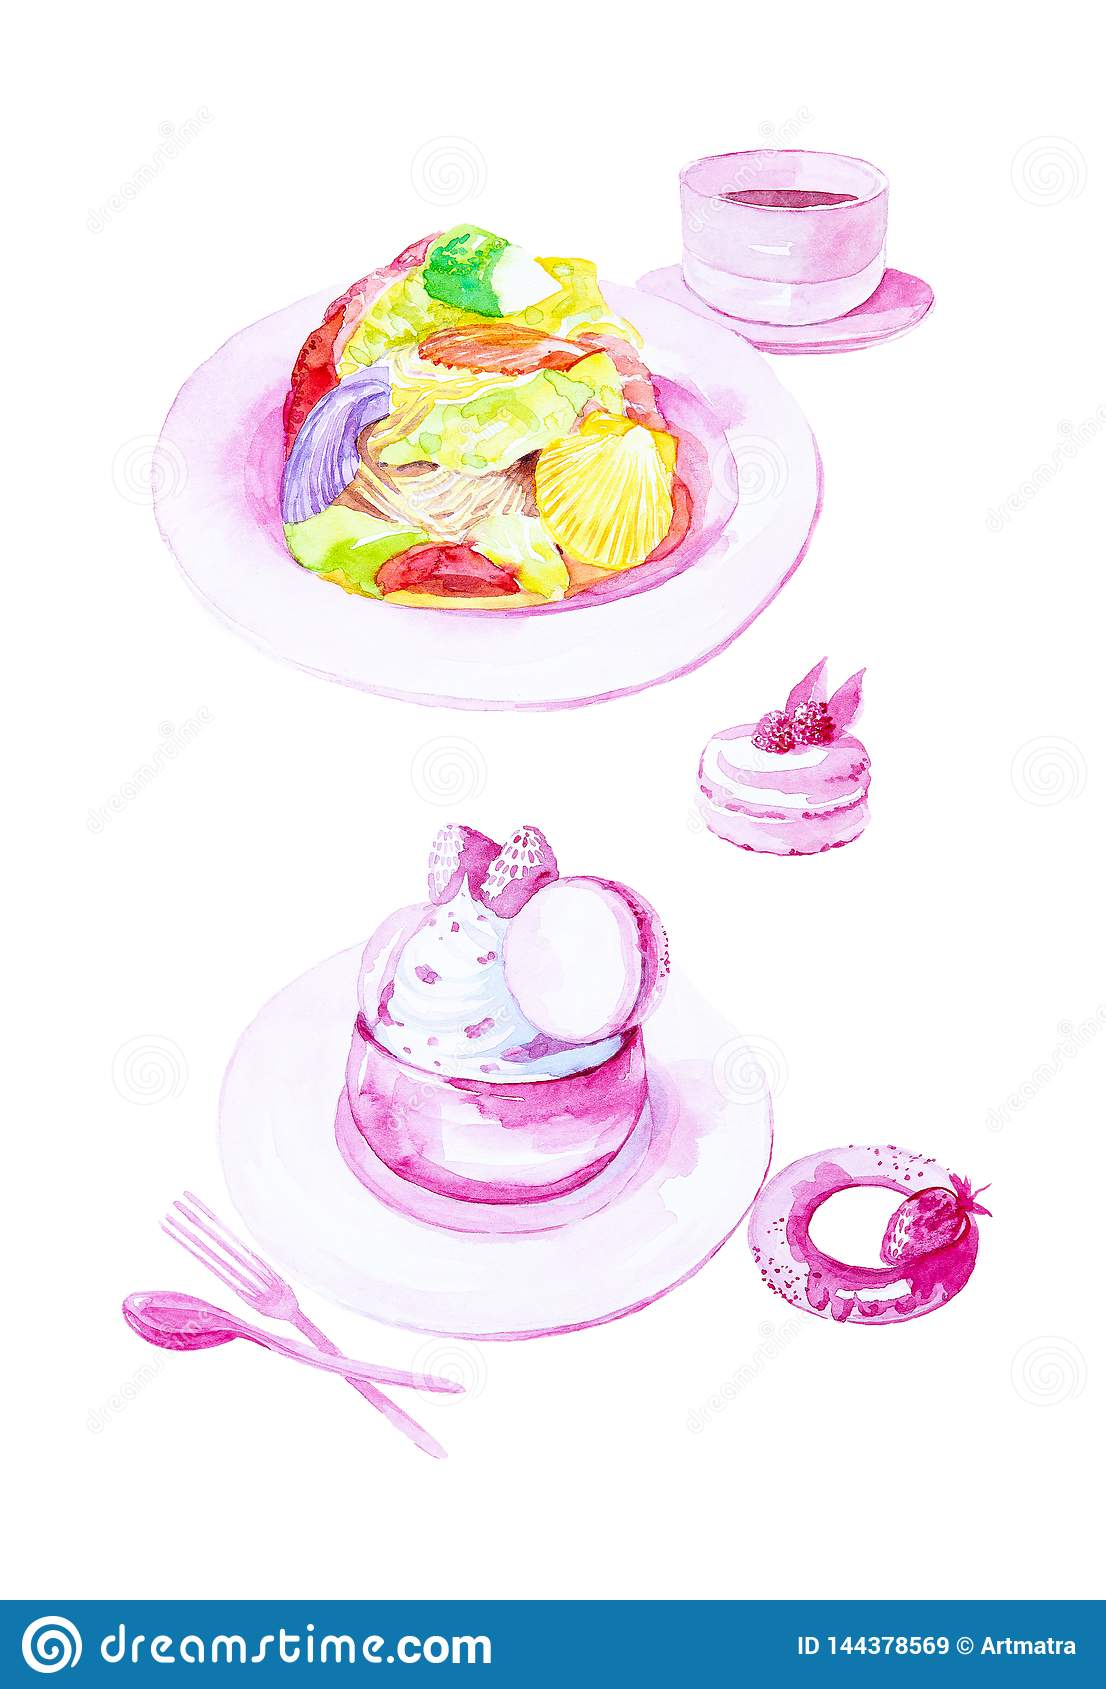 Watercolor illustration of set of salad of scallops,dessert ice cream,bagel with strawberries and macaroon cakes. Isolated on